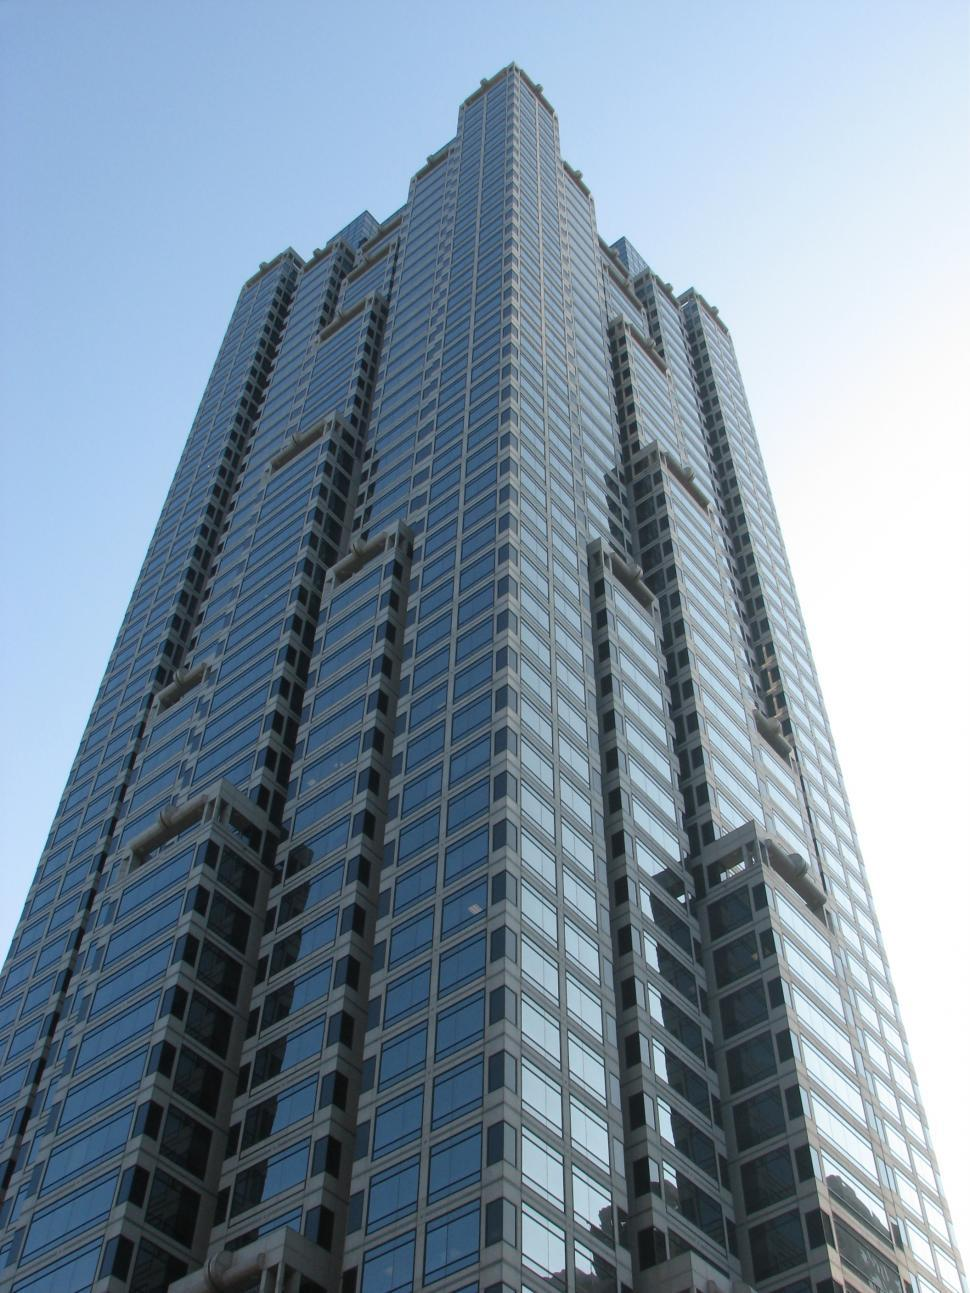 Download Free Stock HD Photo of View of a tall building in downtown Atlanta, Georgia Online